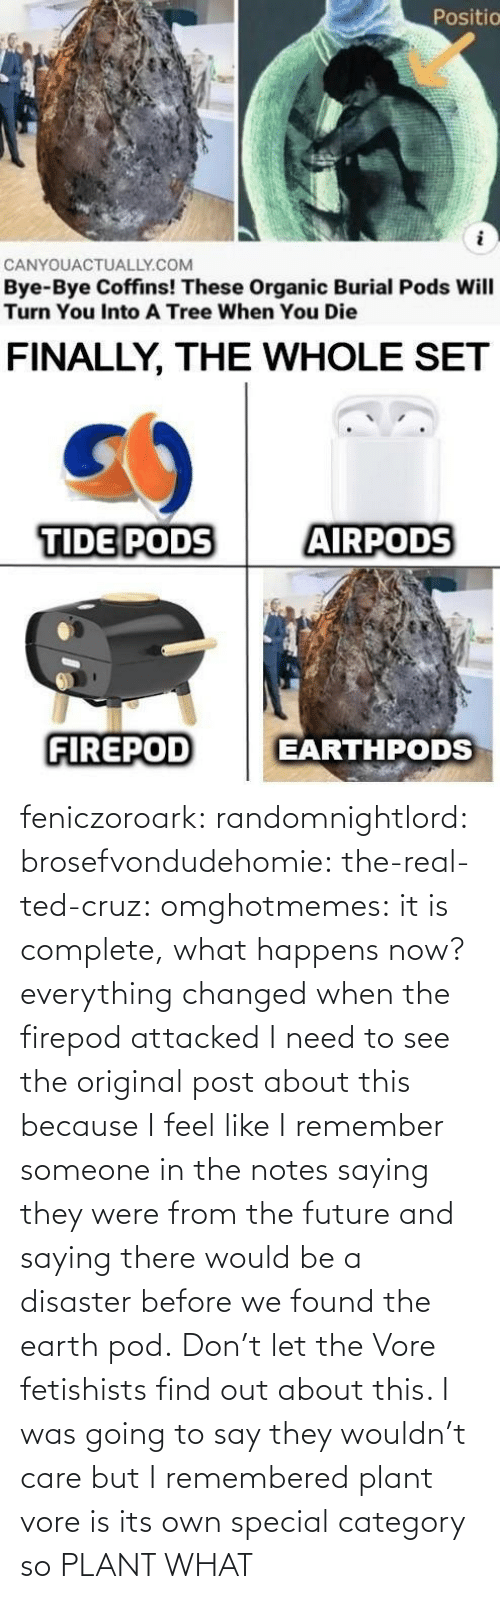 Find Out: feniczoroark:  randomnightlord:  brosefvondudehomie: the-real-ted-cruz:  omghotmemes: it is complete, what happens now? everything changed when the firepod attacked    I need to see the original post about this because I feel like I remember someone in the notes saying they were from the future and saying there would be a disaster before we found the earth pod.    Don't let the Vore fetishists find out about this.    I was going to say they wouldn't care but I remembered plant vore is its own special category so   PLANT WHAT